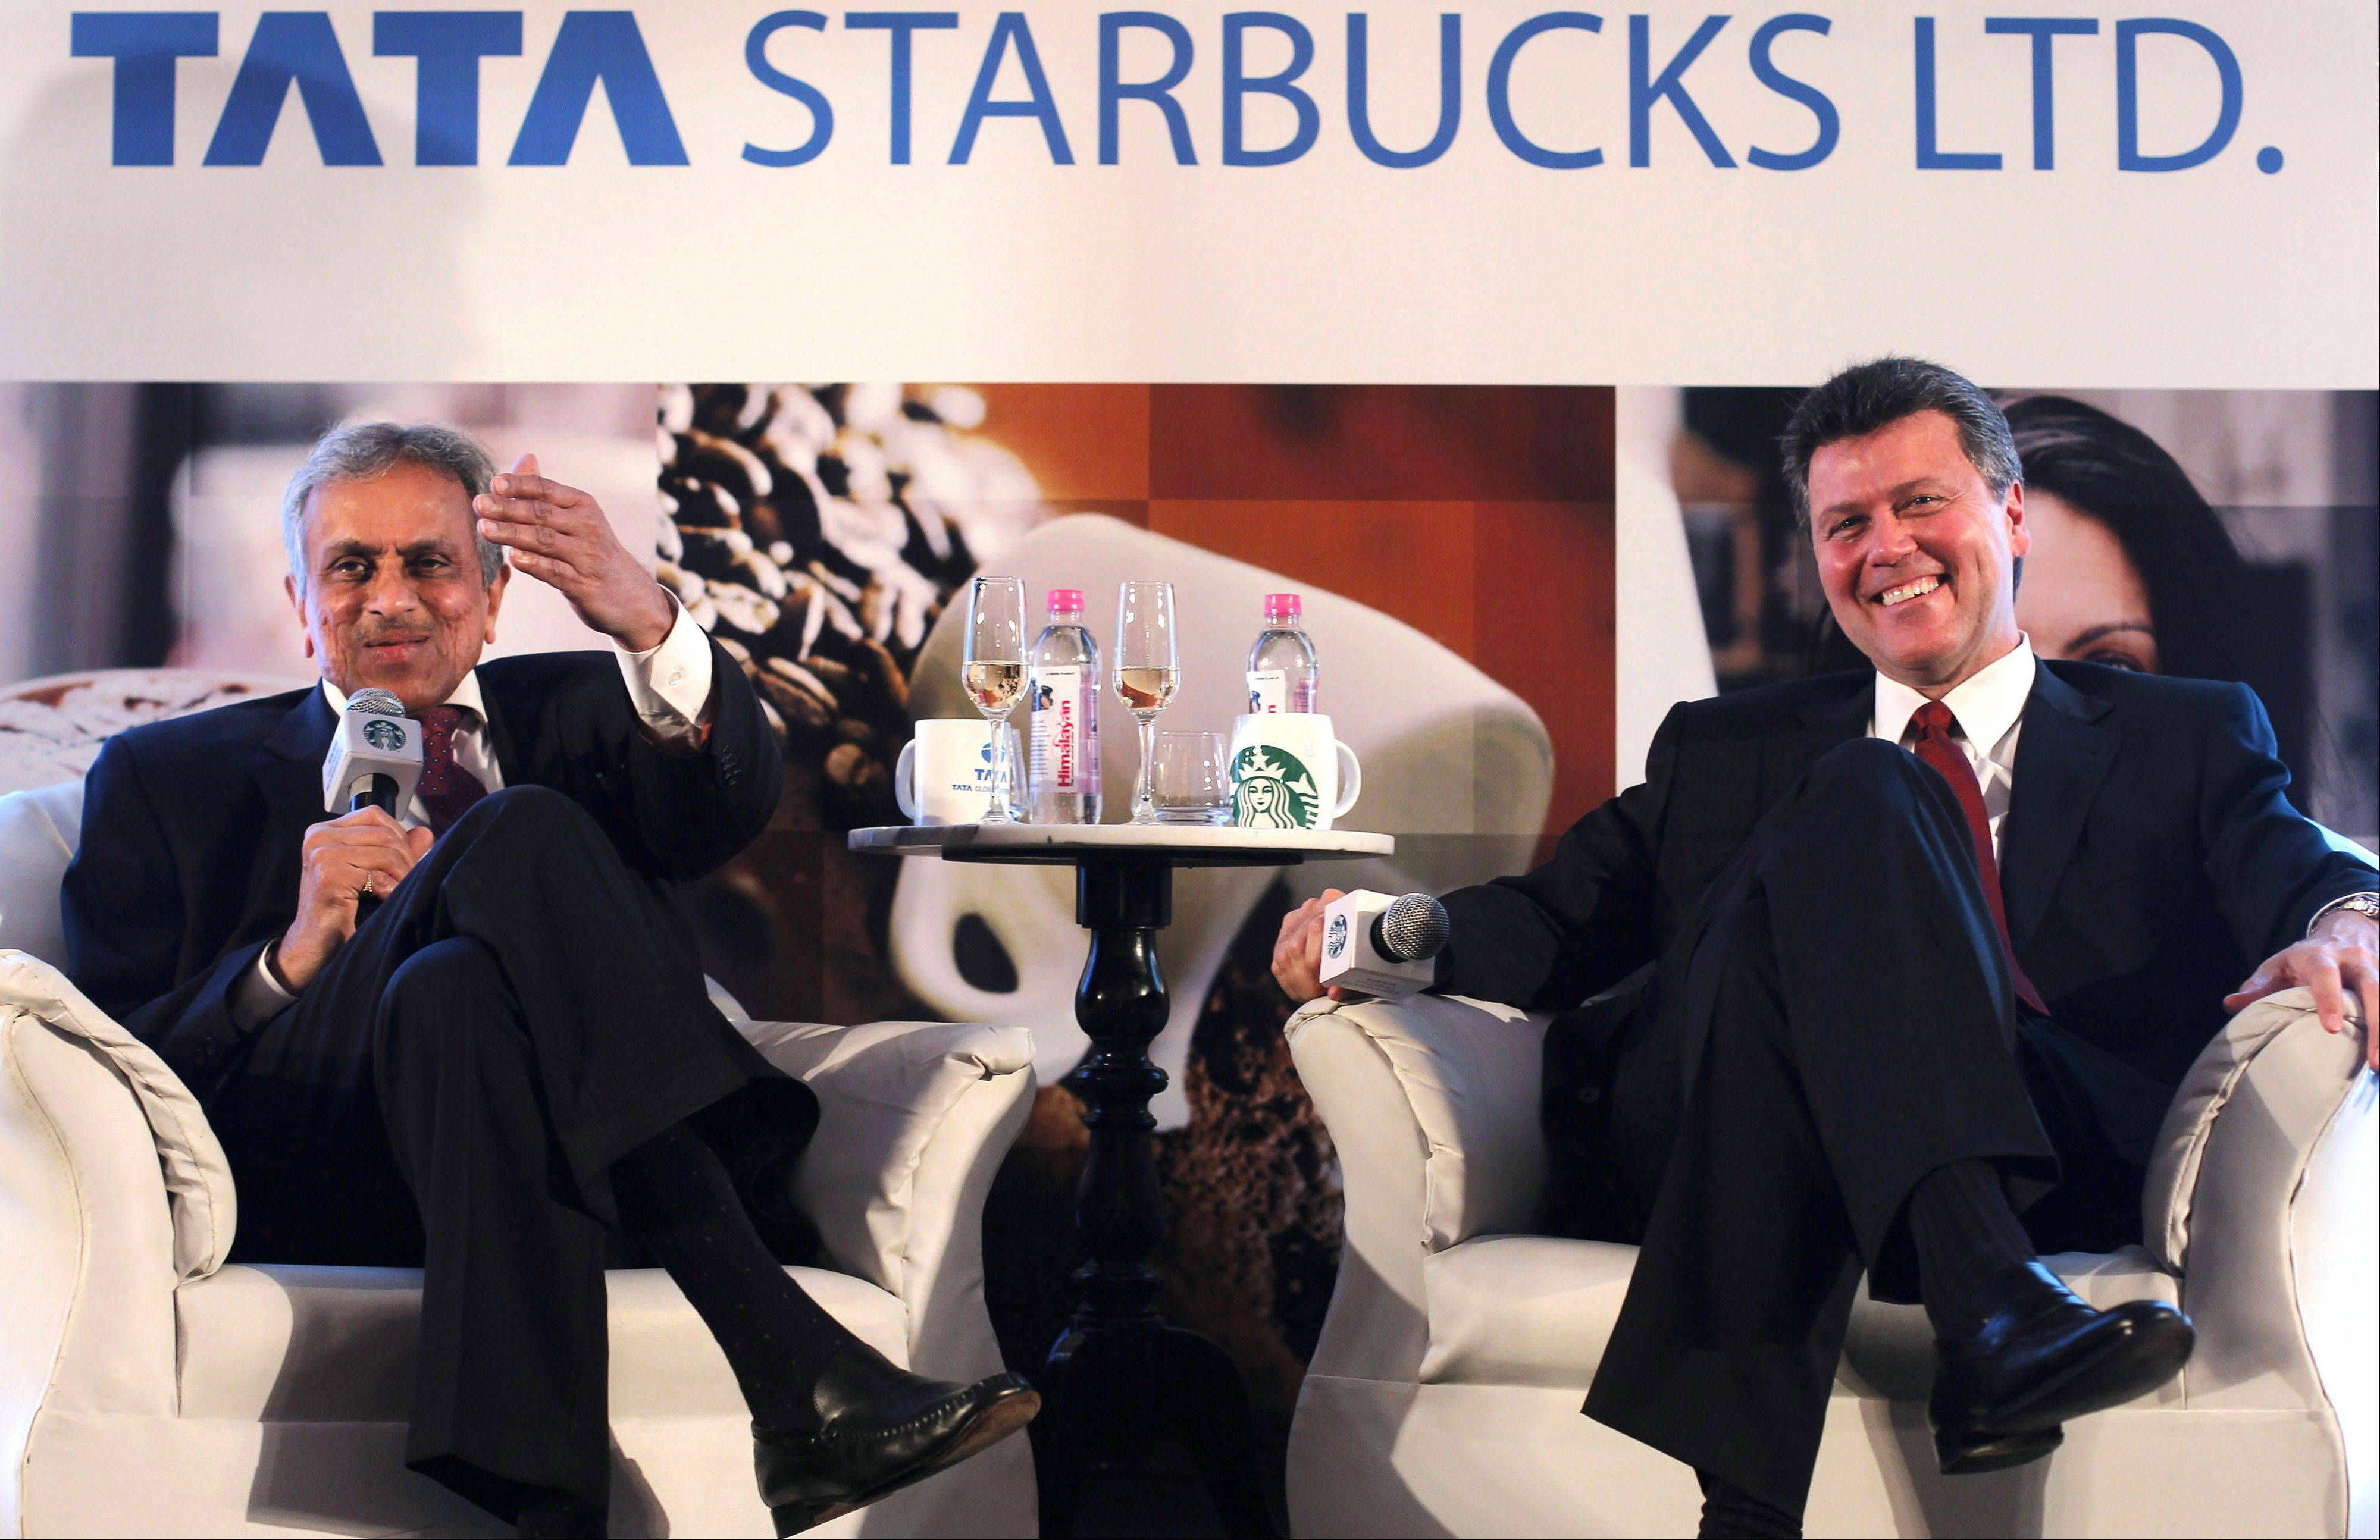 R.K. Krishankumar, vice chairman of Tata Global Beverages, left, along with John Culver, president of Starbuck China and Asia Pacific, meet the media in Mumbai, India.